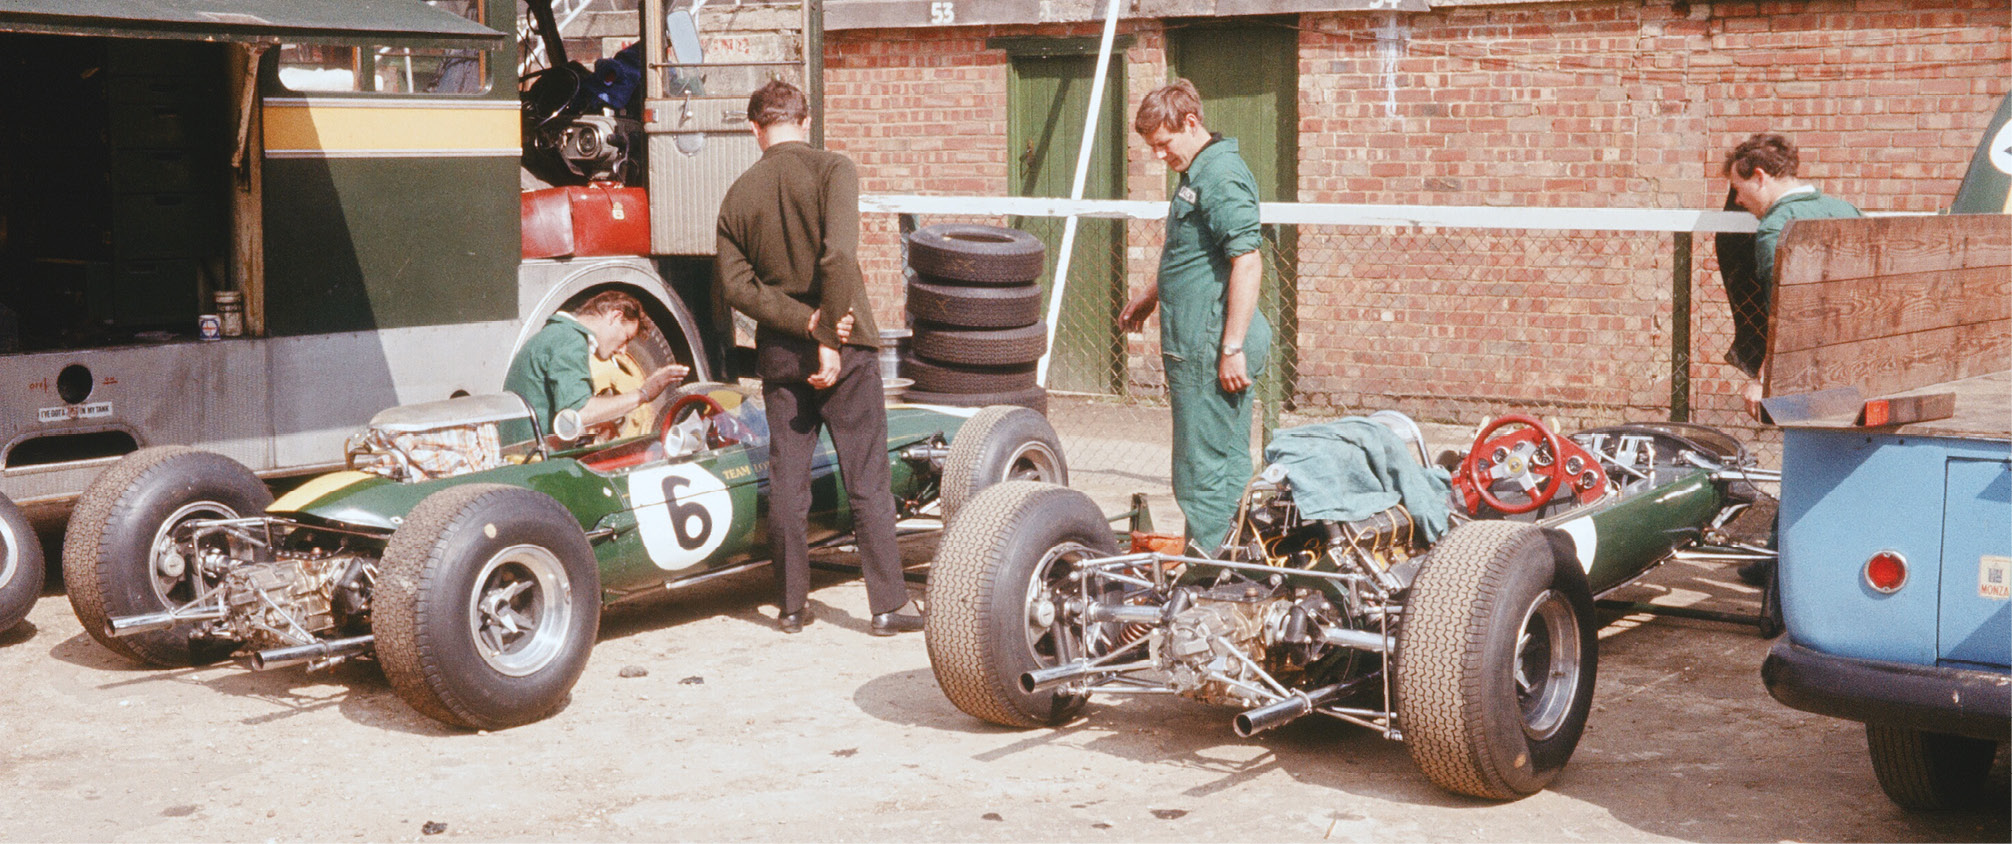 Lotus 33s at rest, Mike Spence's car to the left. Team-mate Jim Clark took his fourth British GP victory